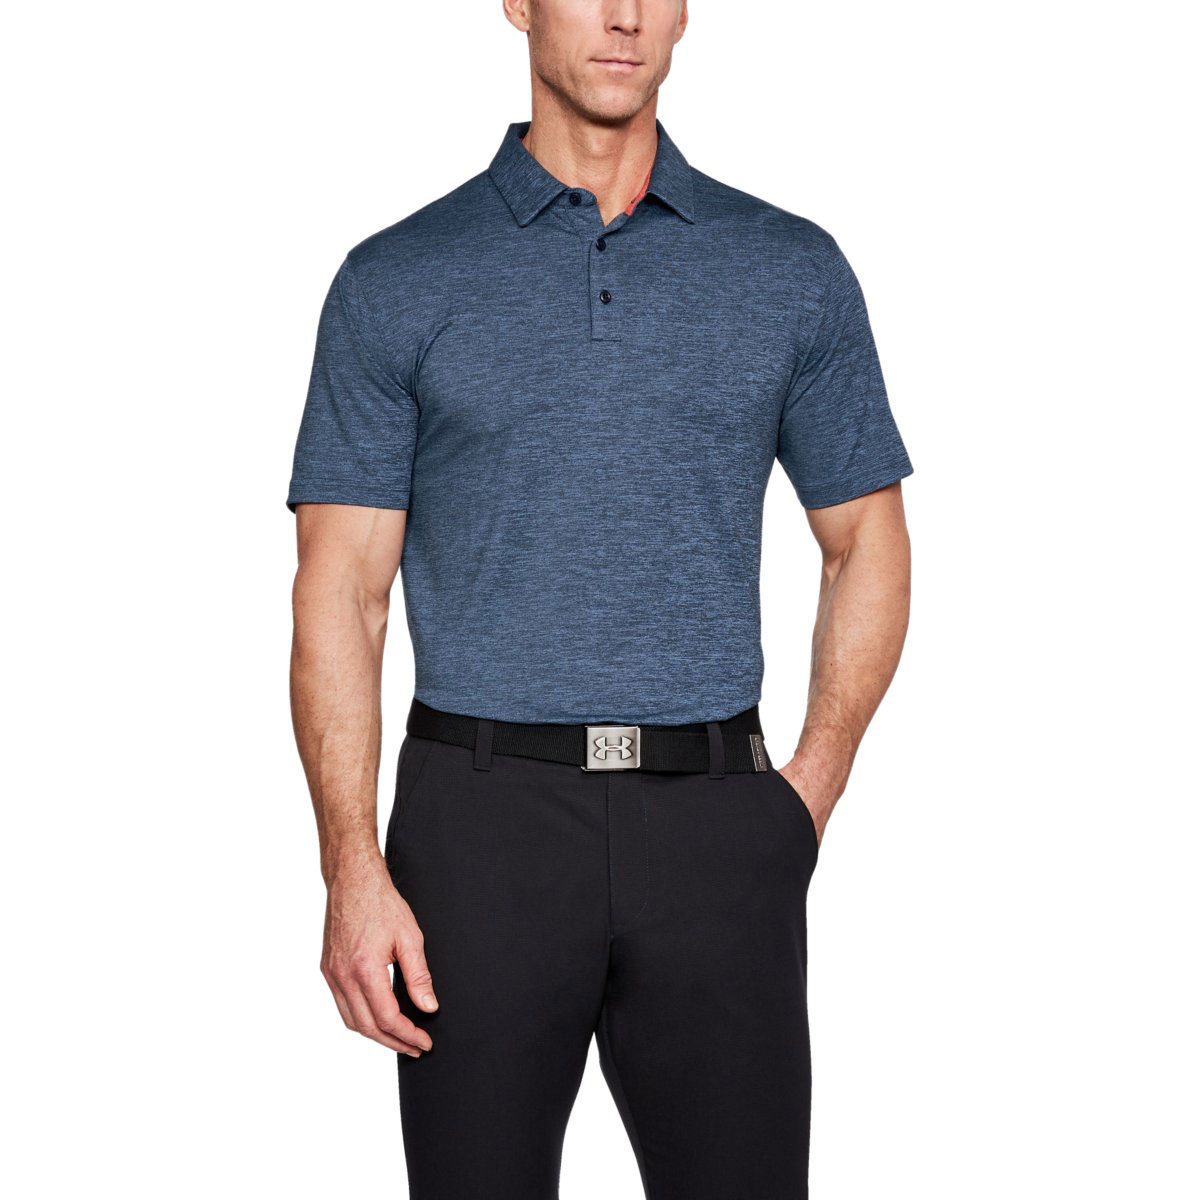 33558831c0b162 Under Armour Mens Crestable Playoff Golf Polo Shirt